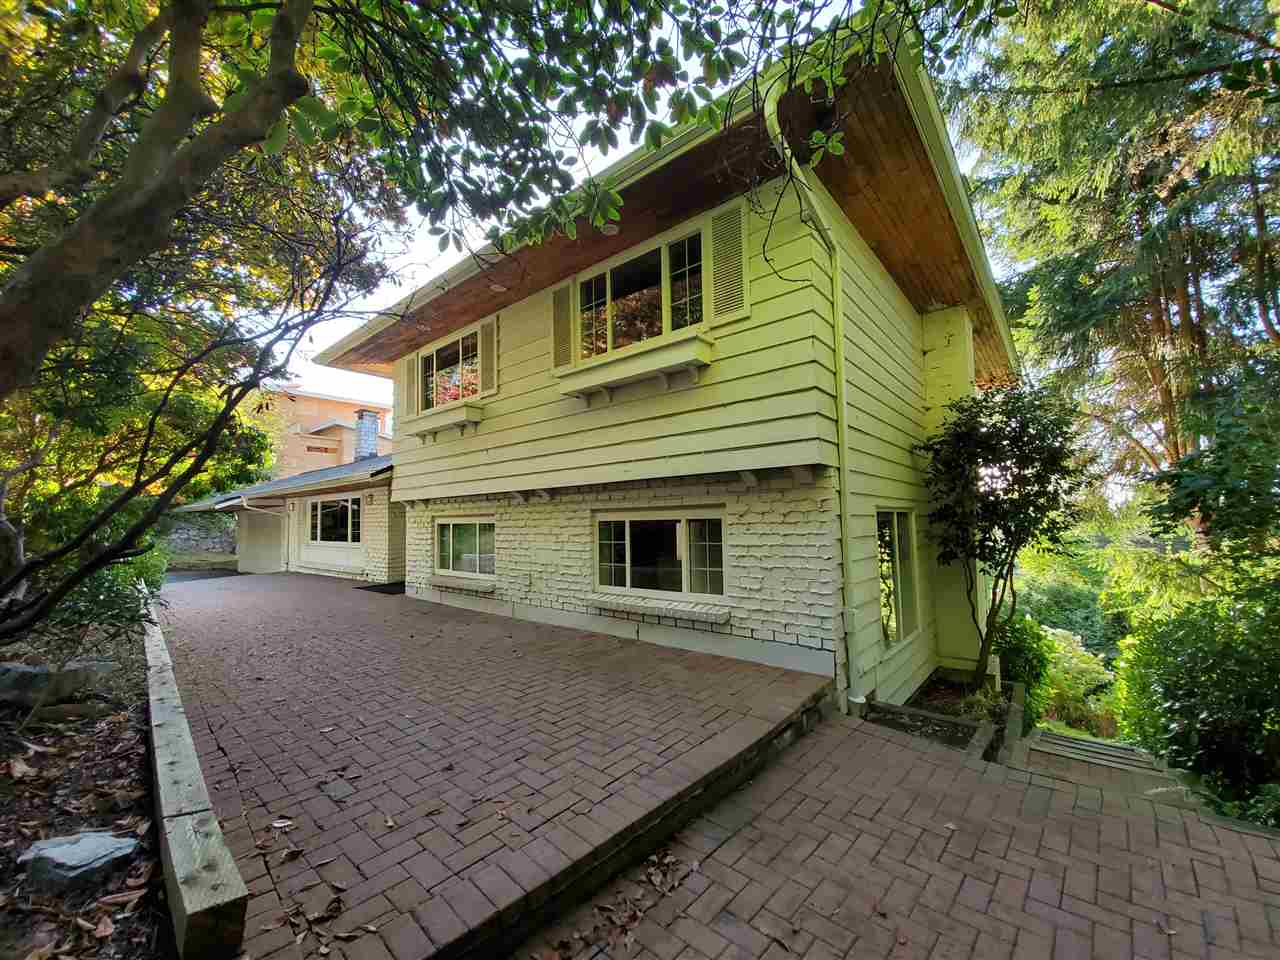 670 ST. ANDREWS ROAD - British Properties House/Single Family for sale, 5 Bedrooms (R2517540) - #30